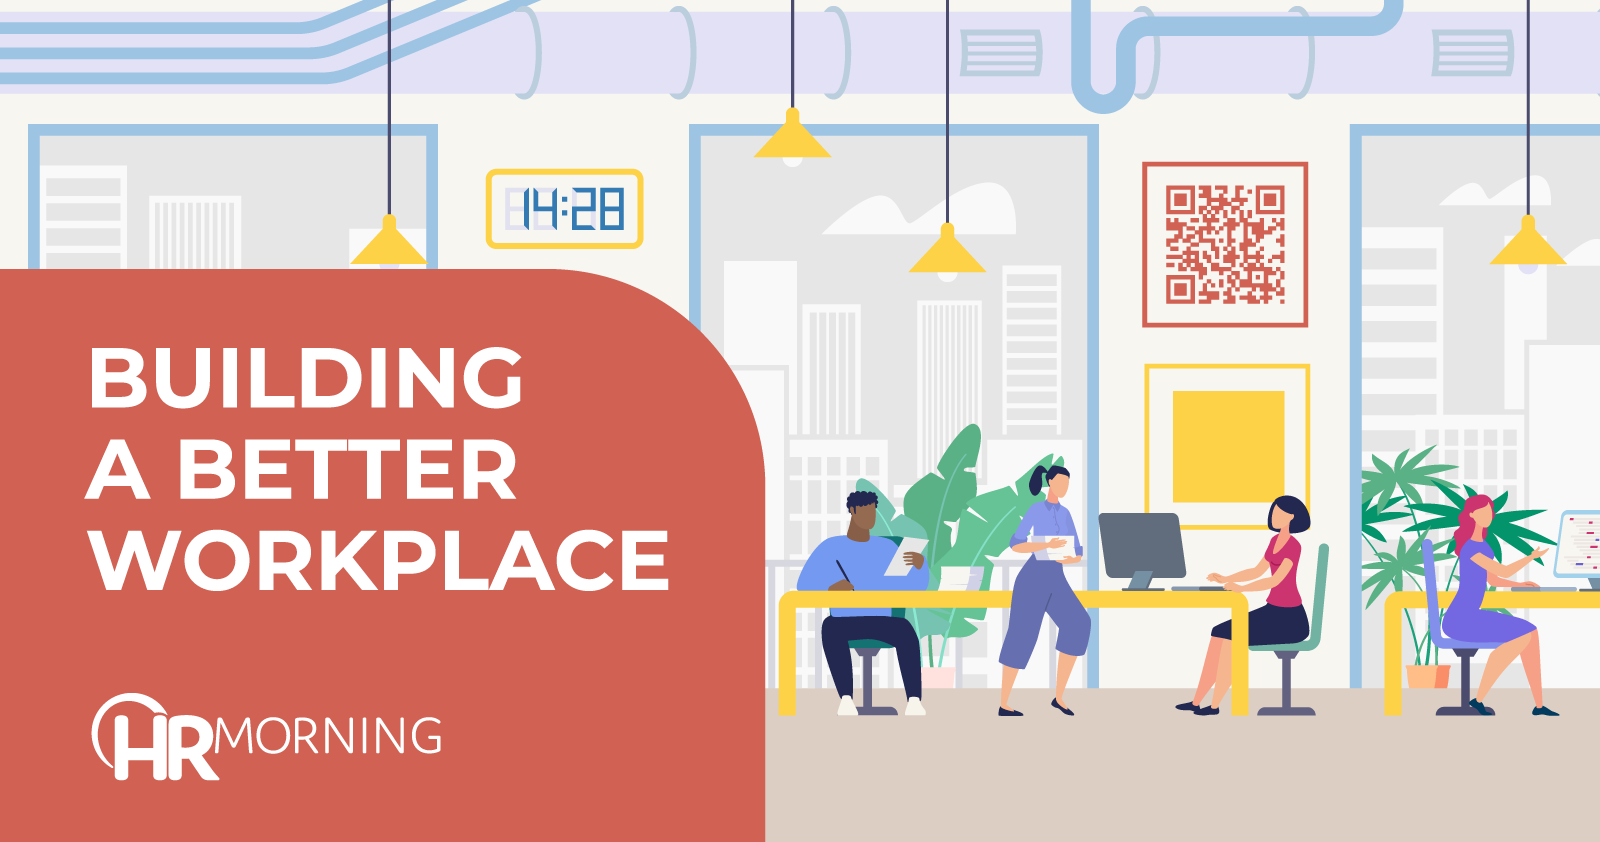 Building A Better Workplace